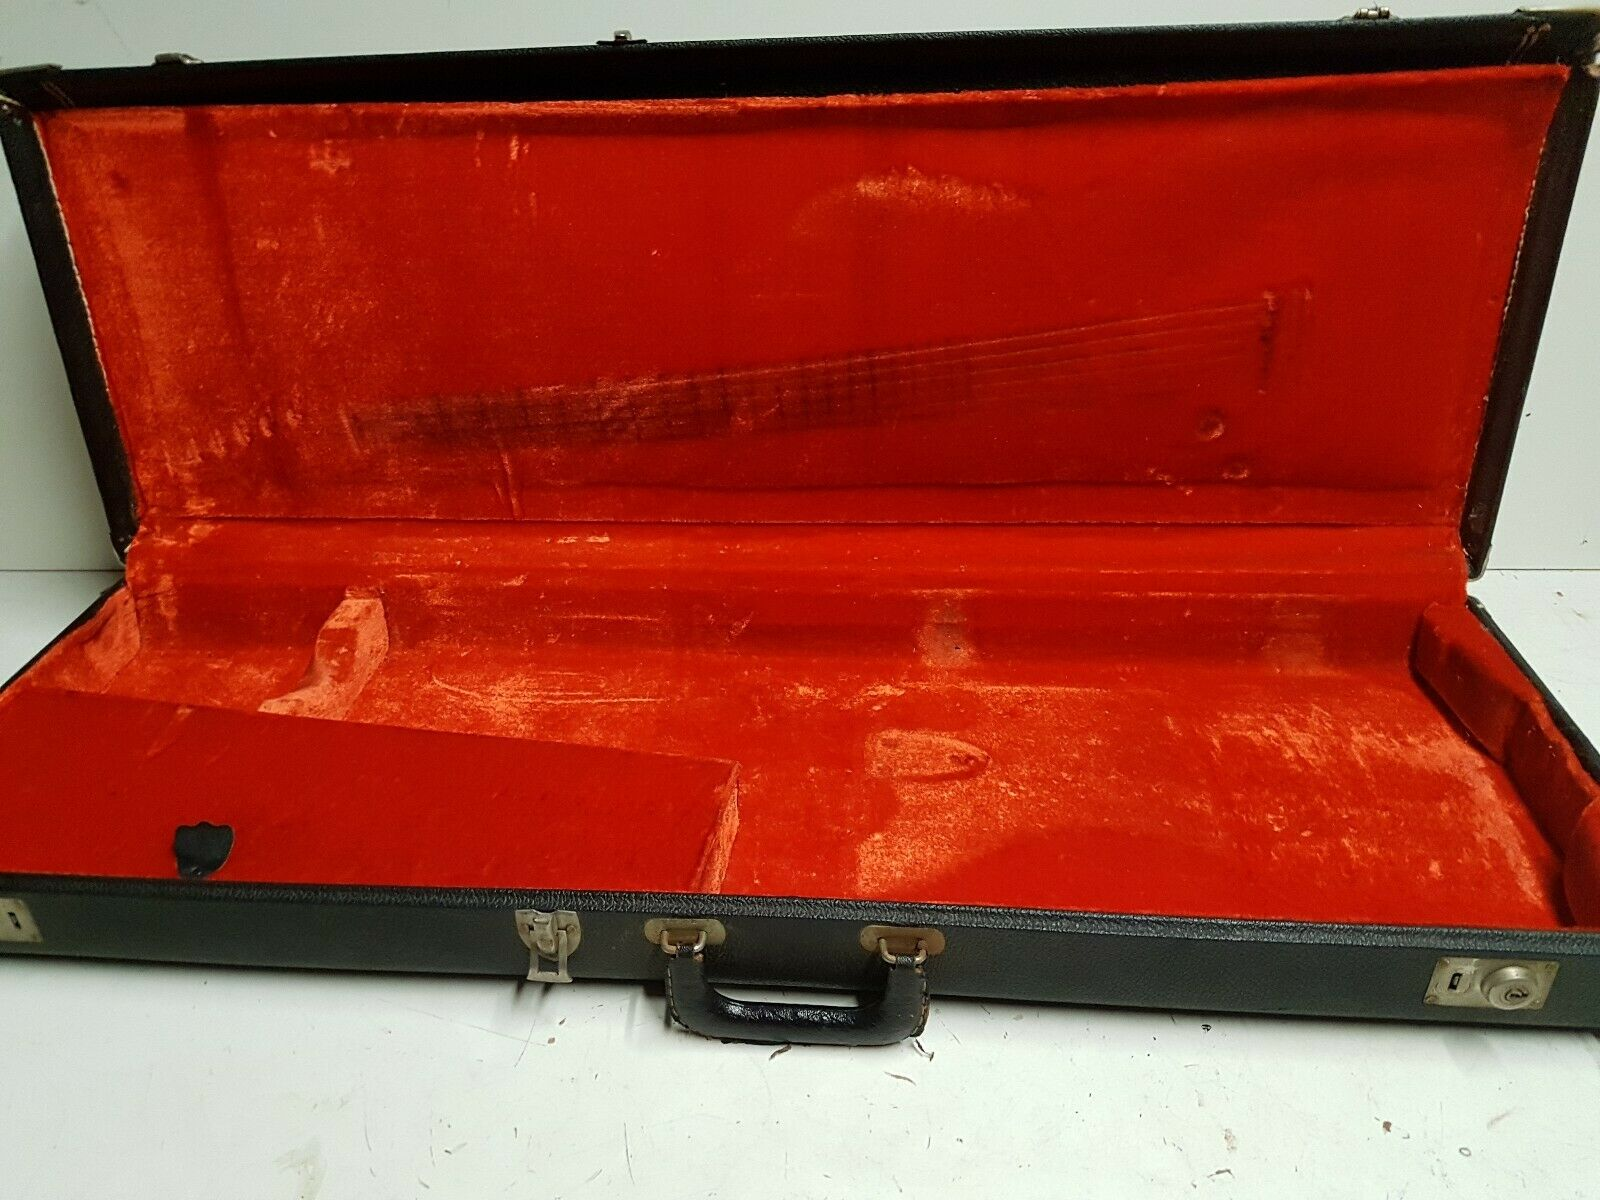 1971 FENDER STRATOCASTER CASE - made in USA